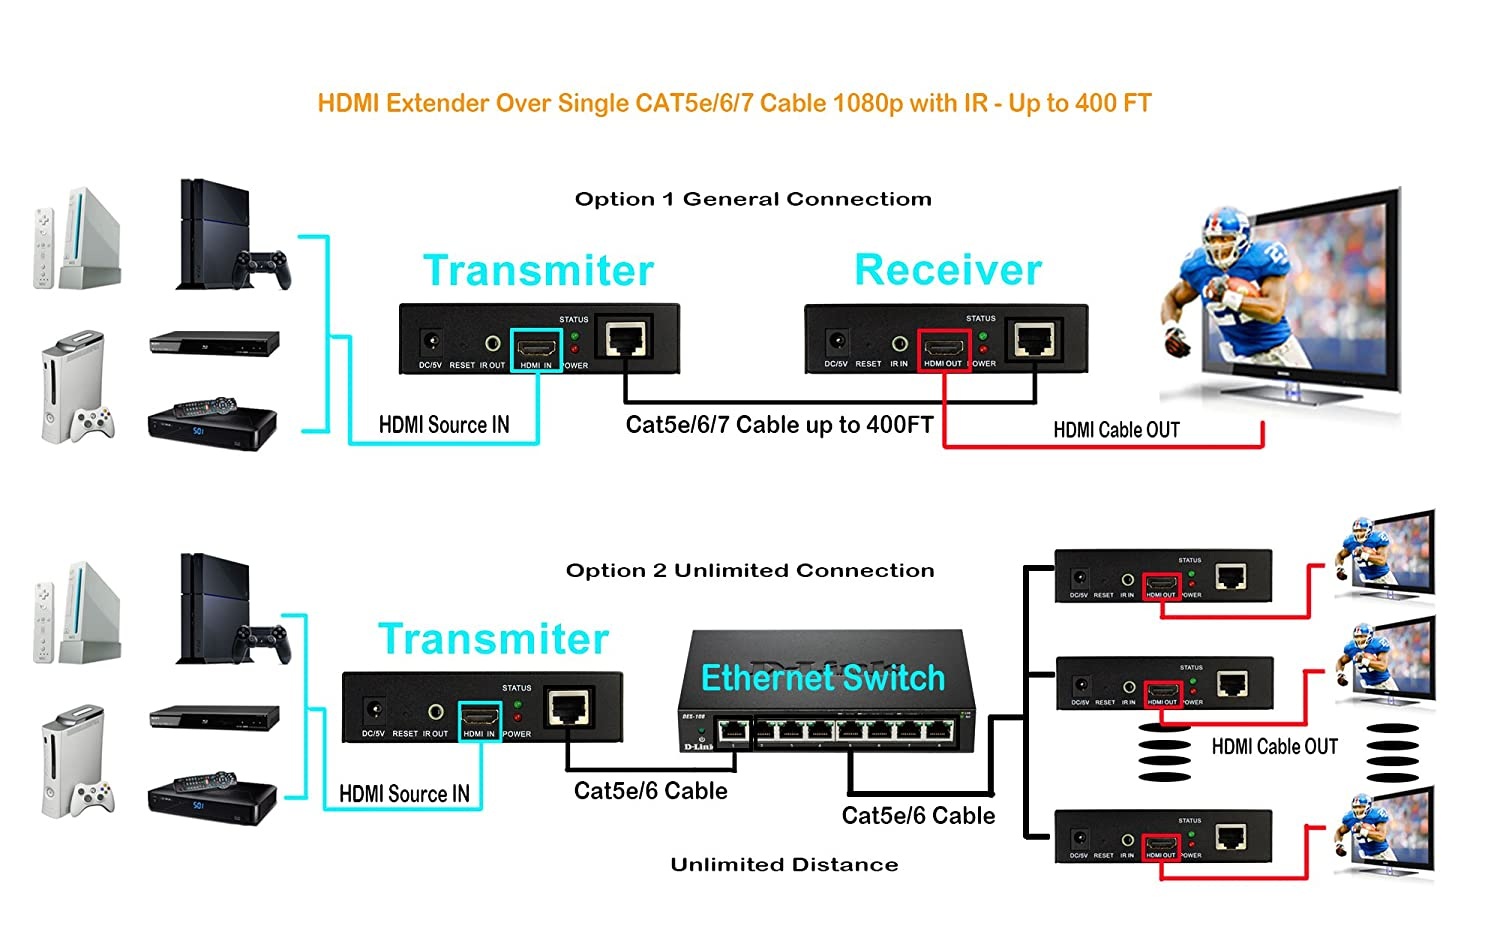 J Tech Digital Hdmi Extender Over Standard Tcp Ip Single Ce Cat5e Wire Diagram Free Lifetime Technical Support From The Manufacturer And 1 Year Warranty